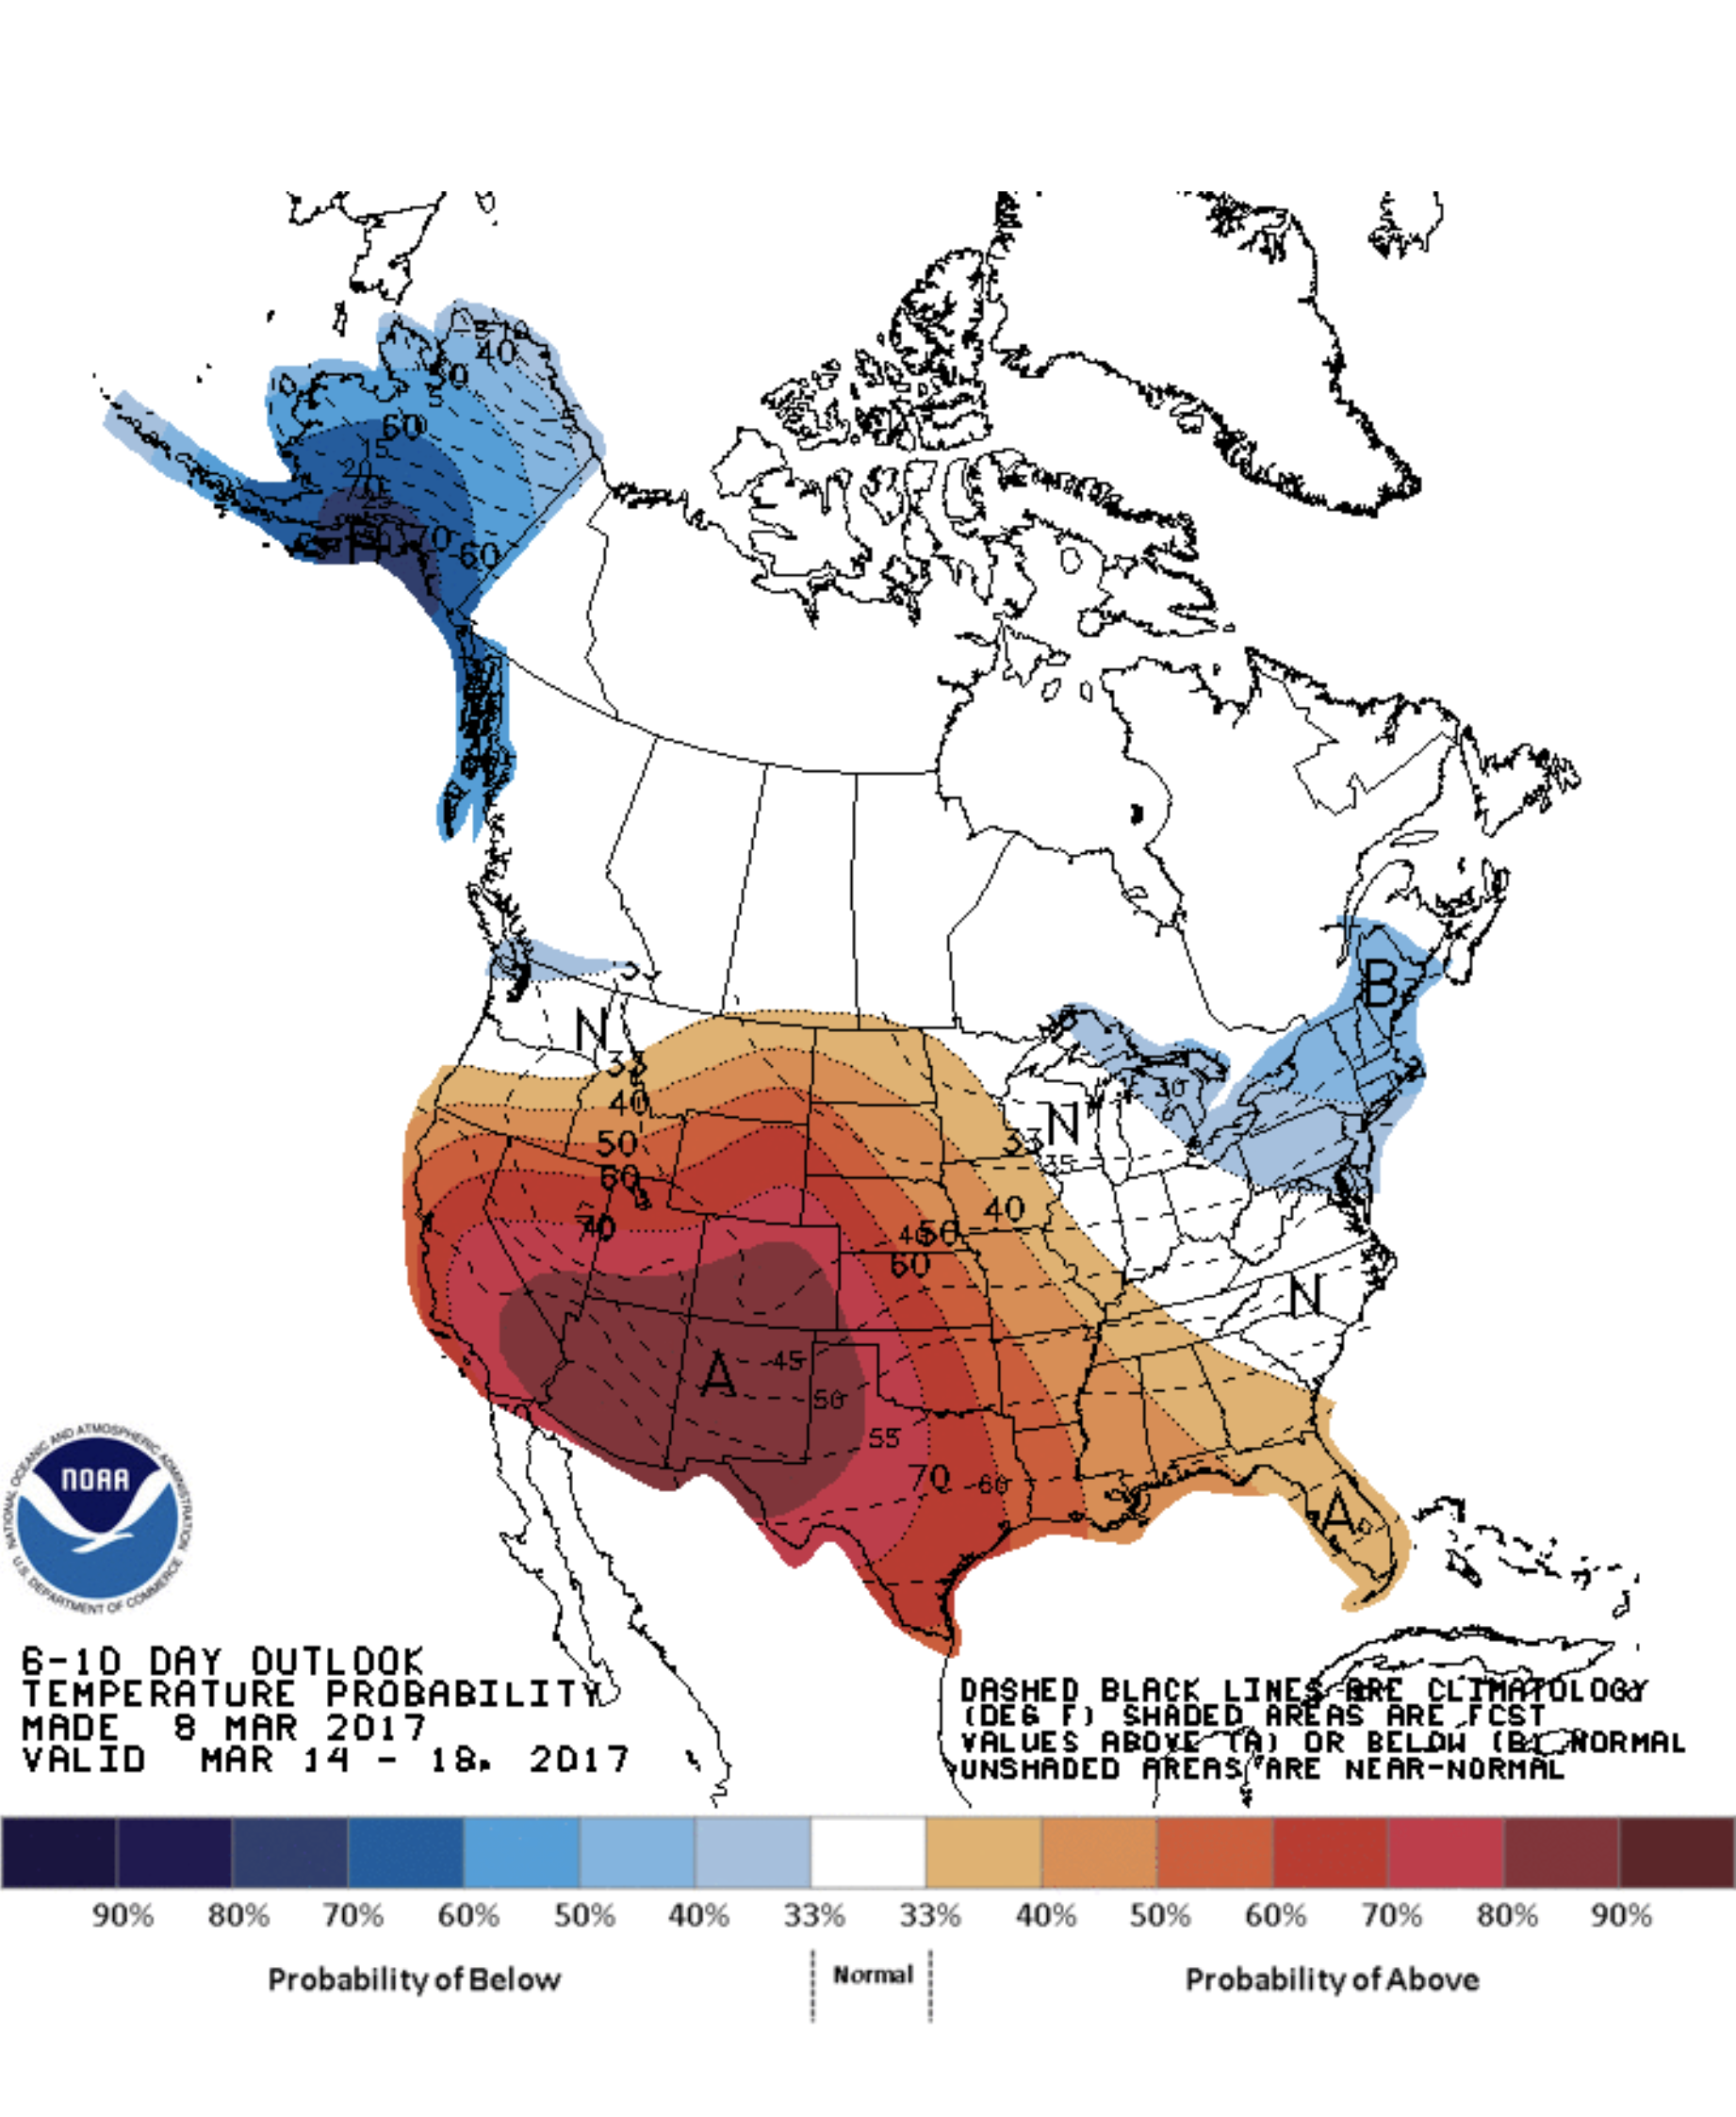 6-10 day temperature outlook. cpc.noaa.gov